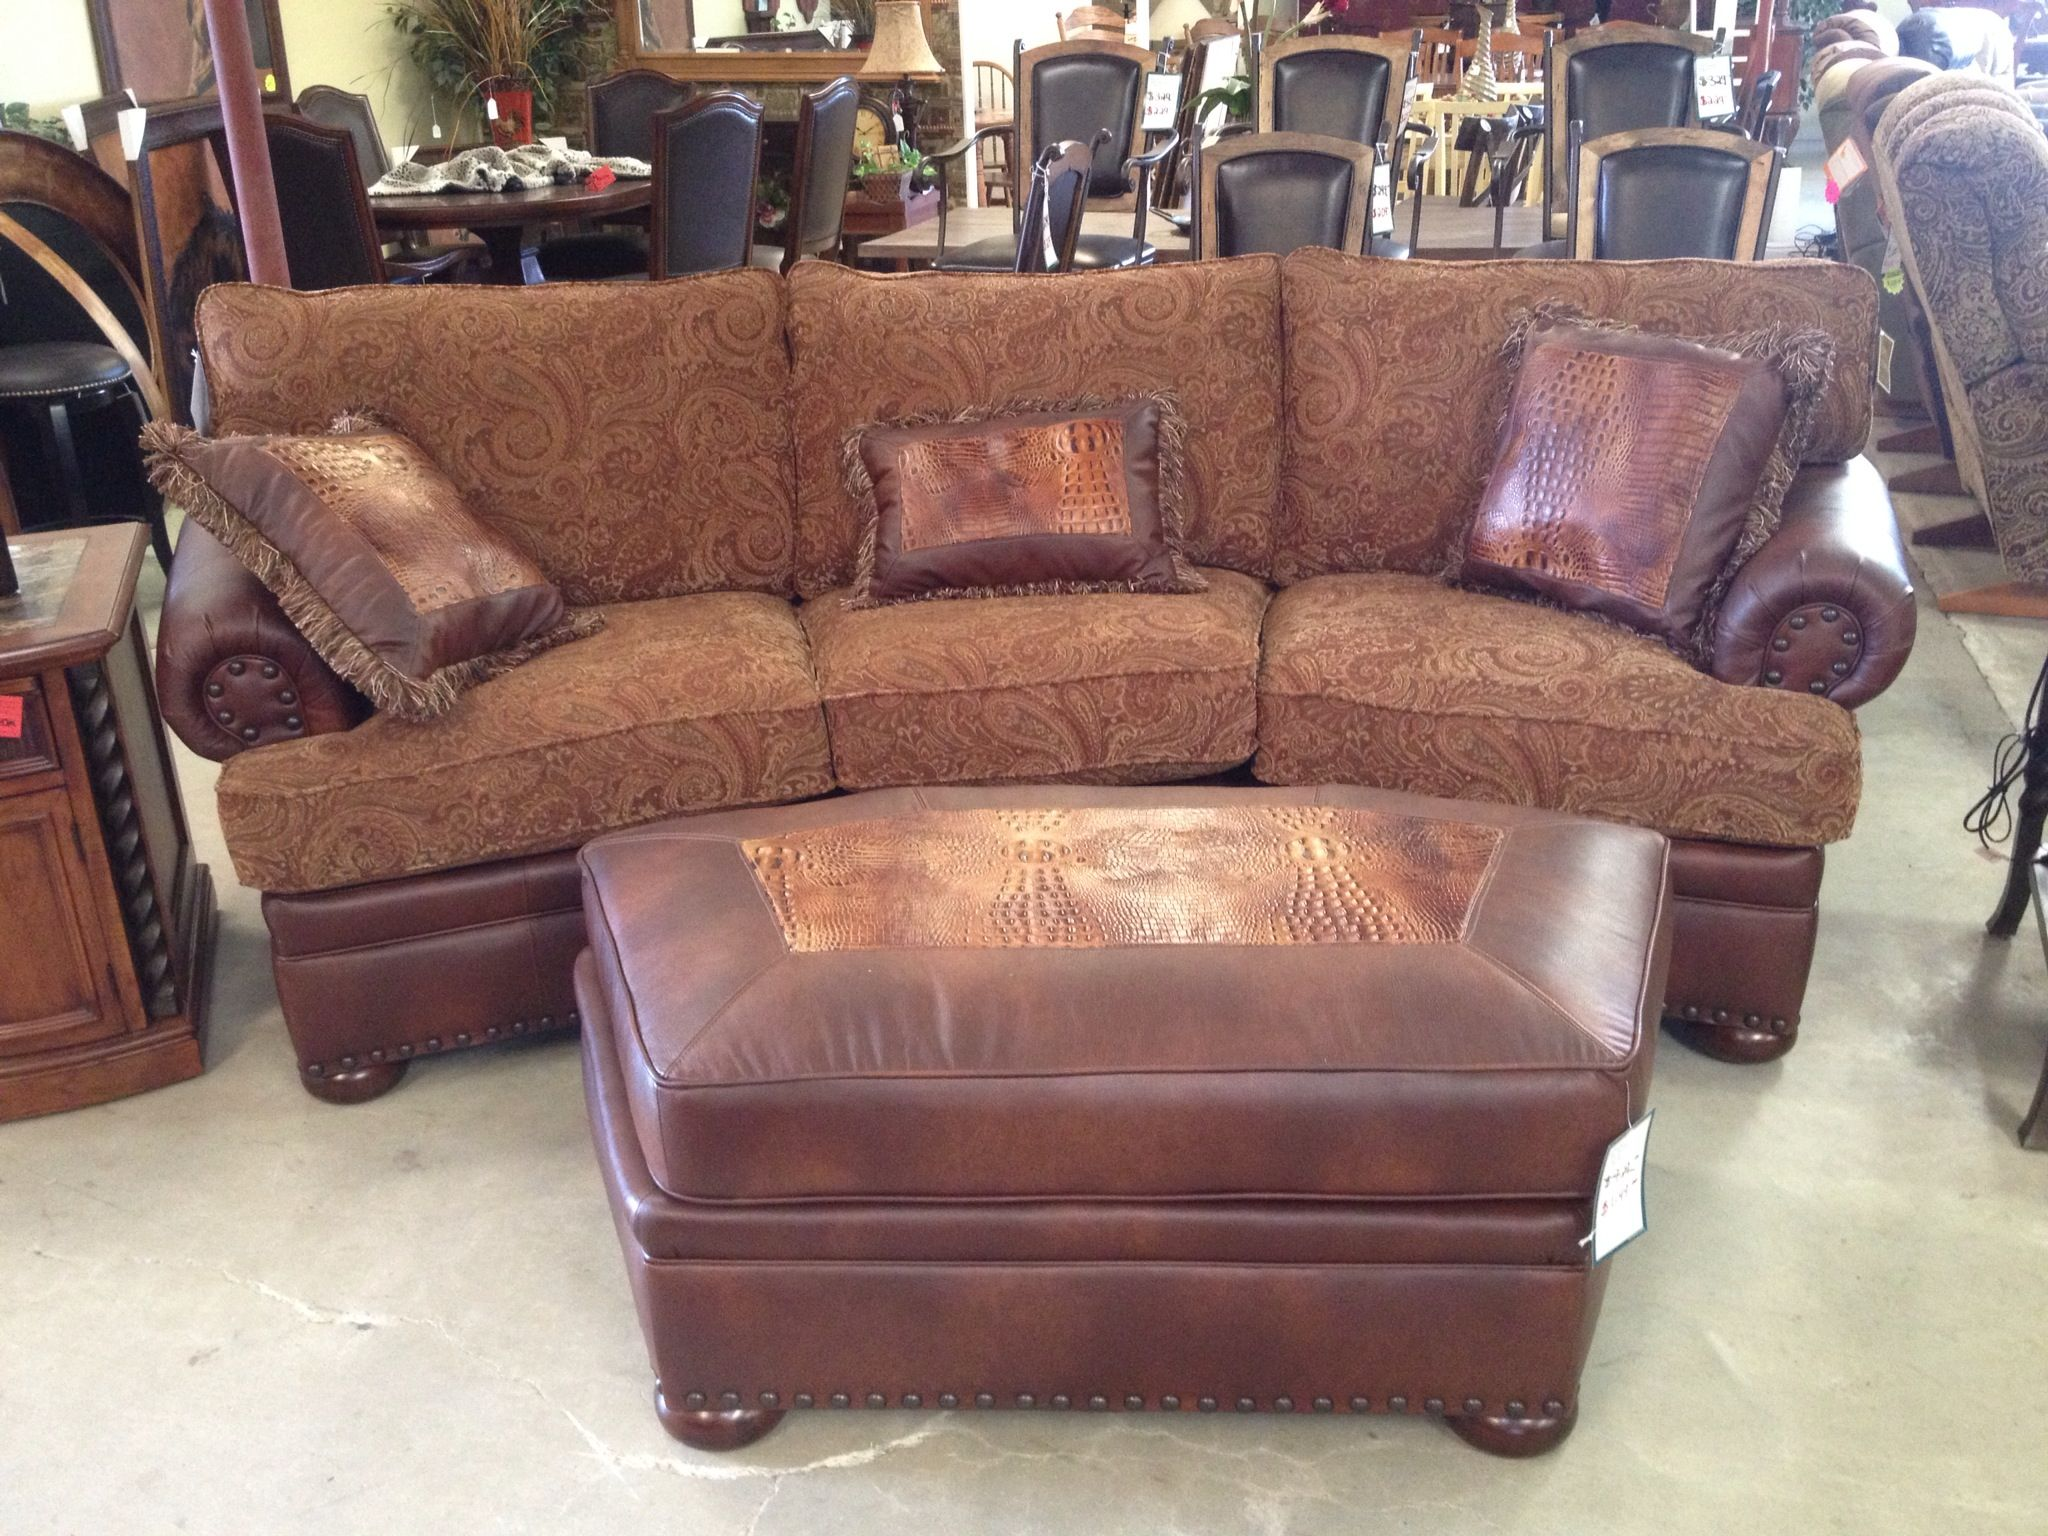 Mayo Furniture conversational couch from Denio's in ...